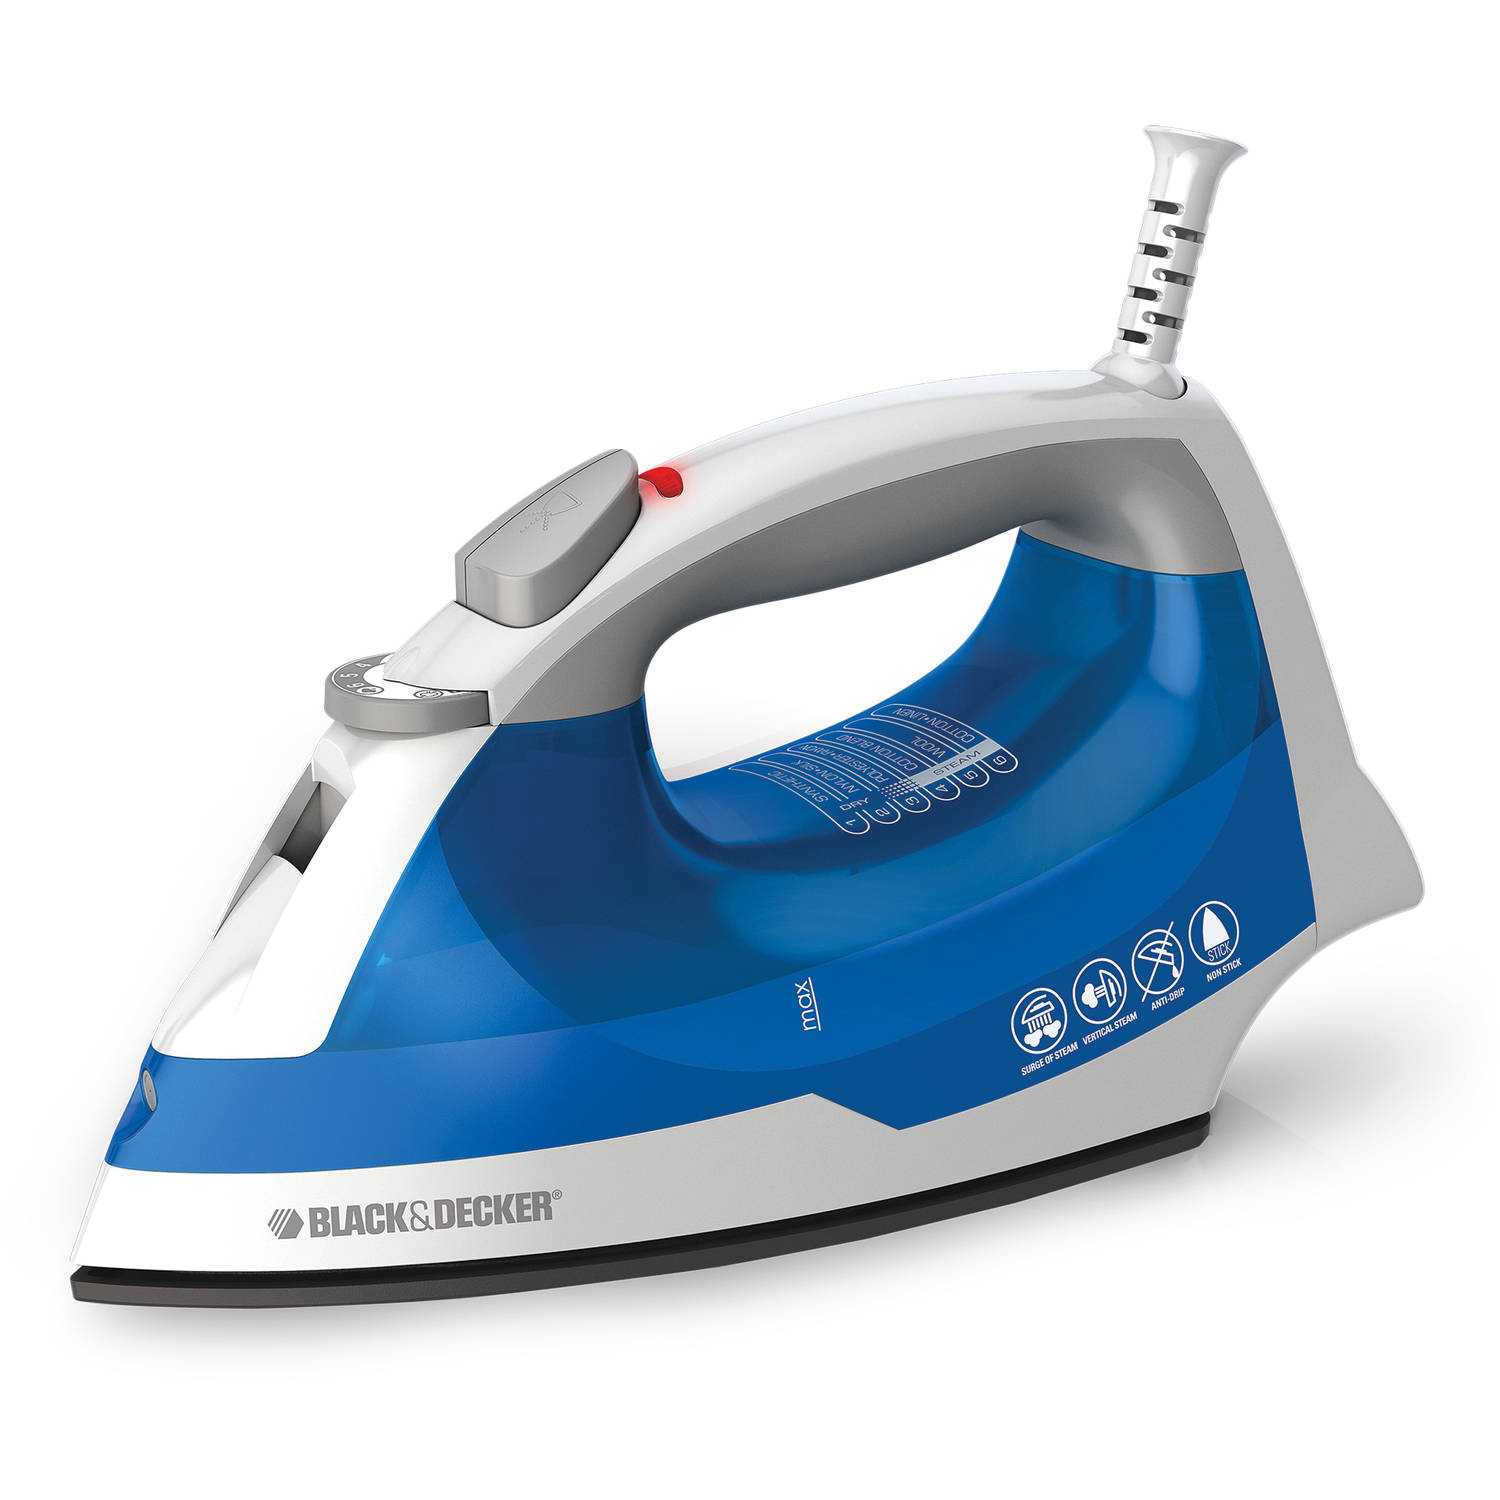 BLACK+DECKER IR03V Easy Steam Iron Clothing Iron